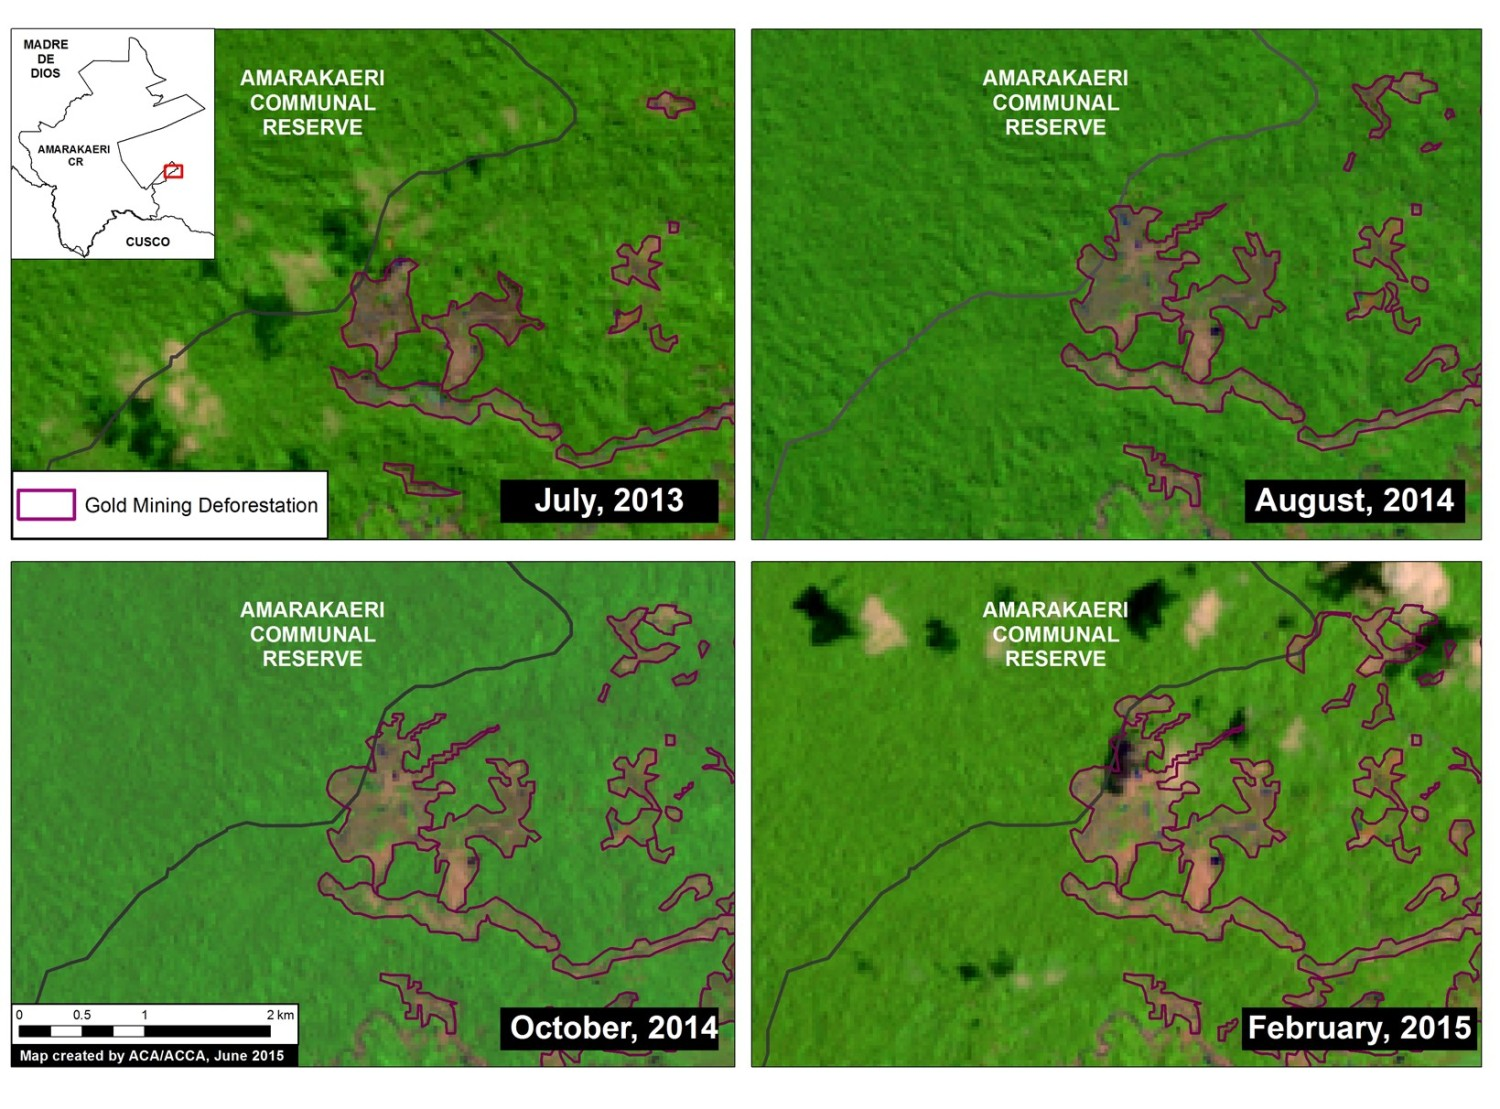 Satellite (Landsat 8) image time-series (2013 – 2015) of deforestation within the southeast section of the Amarakaeri Communal Reserve. Note that all four panels show the same location over time. Key data sources: USGS, SERNANP.